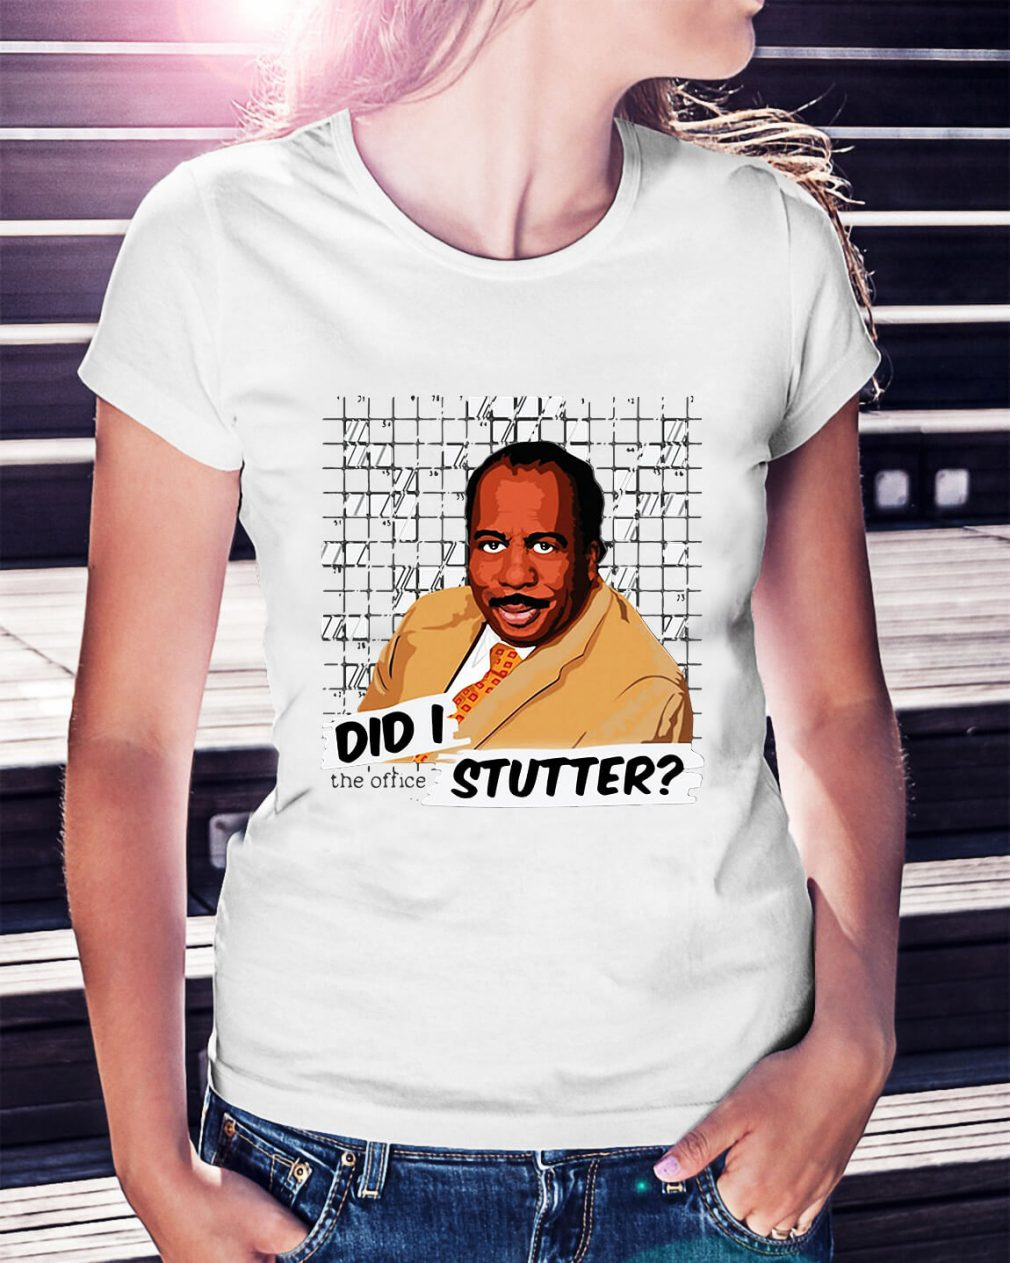 The office Stanley Hudson did I stutter Ladies Tee